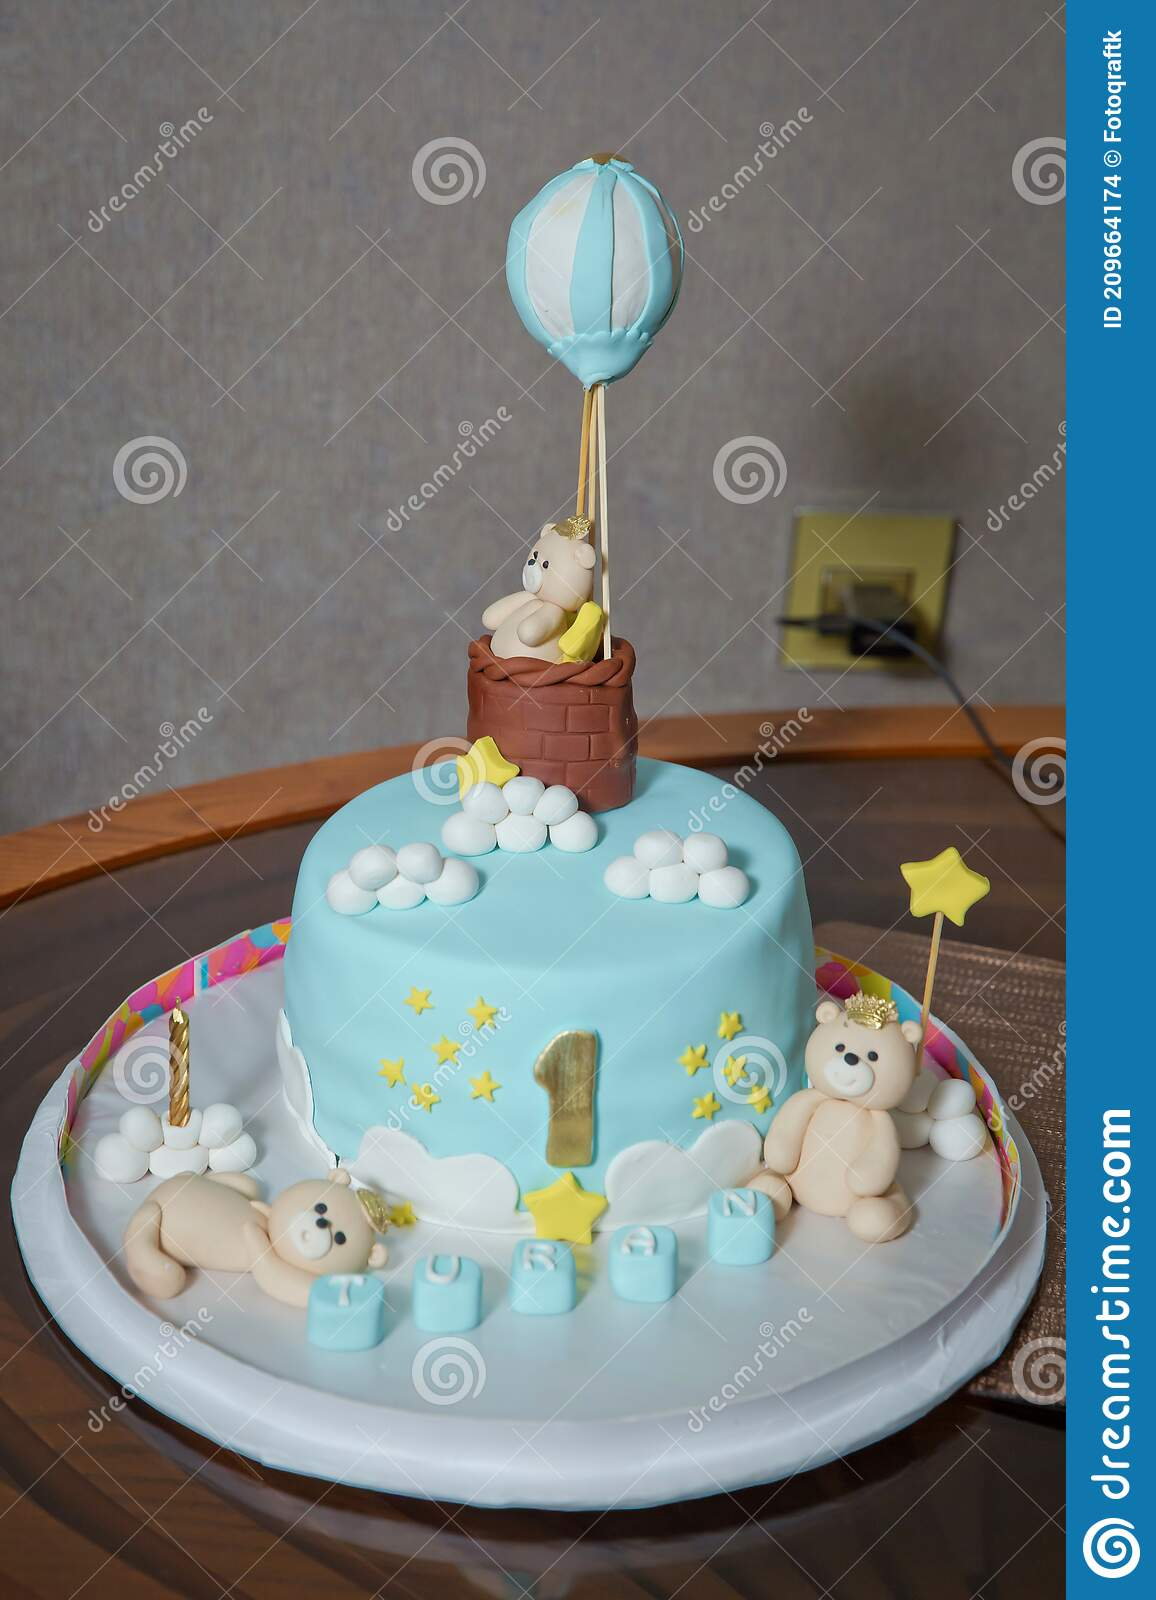 Baby Boy Bears Cake 1 Year Birthday Cake For A Blue Boy With A Number 1 Amazing Cake For Boy S First Birthday Blue Stock Photo Image Of Biscuit Table 209664174